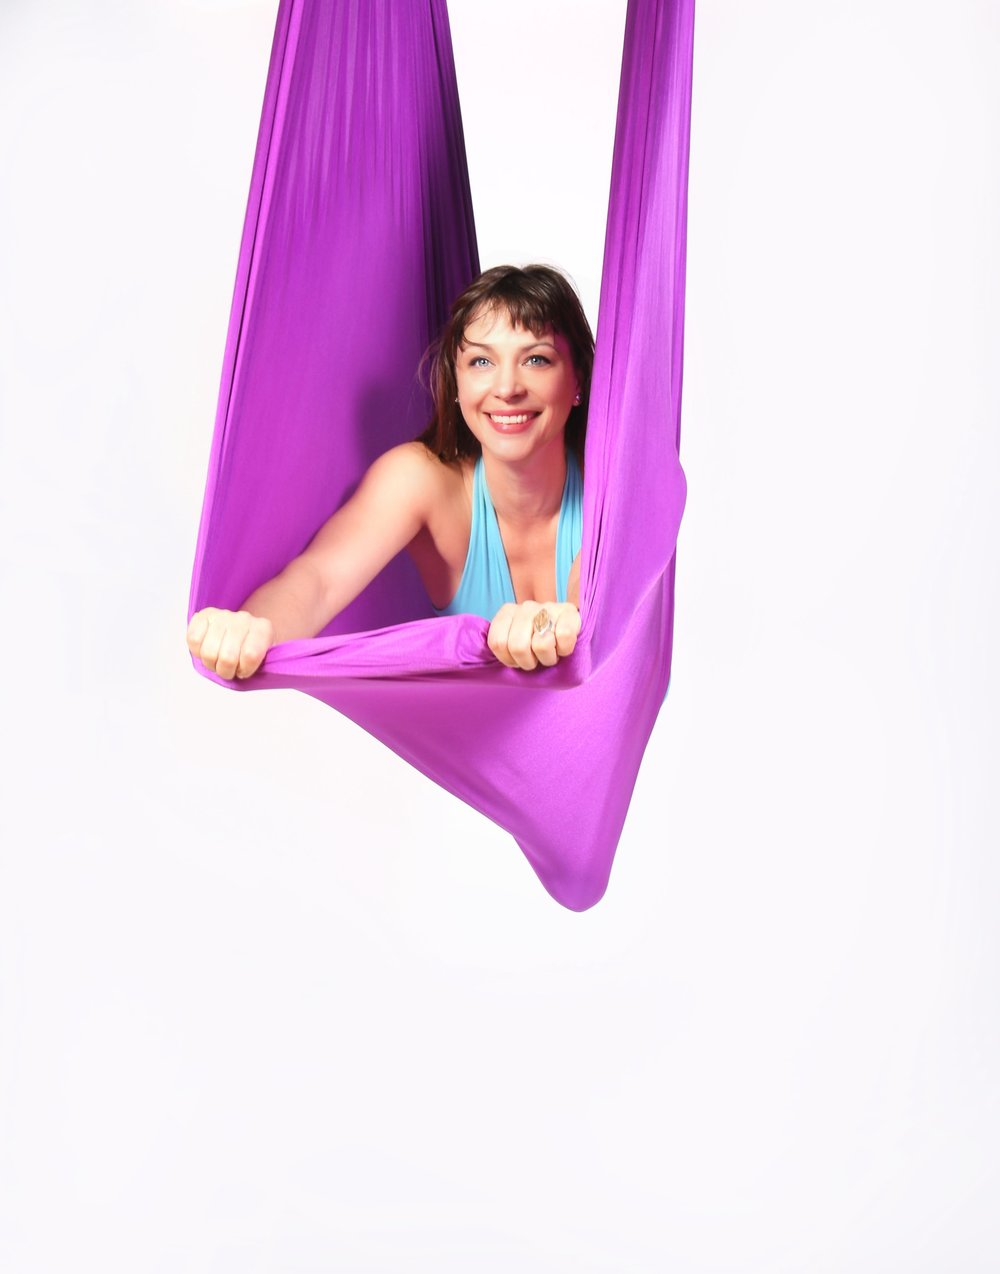 Aerial Yoga Photo by Ed Esposito